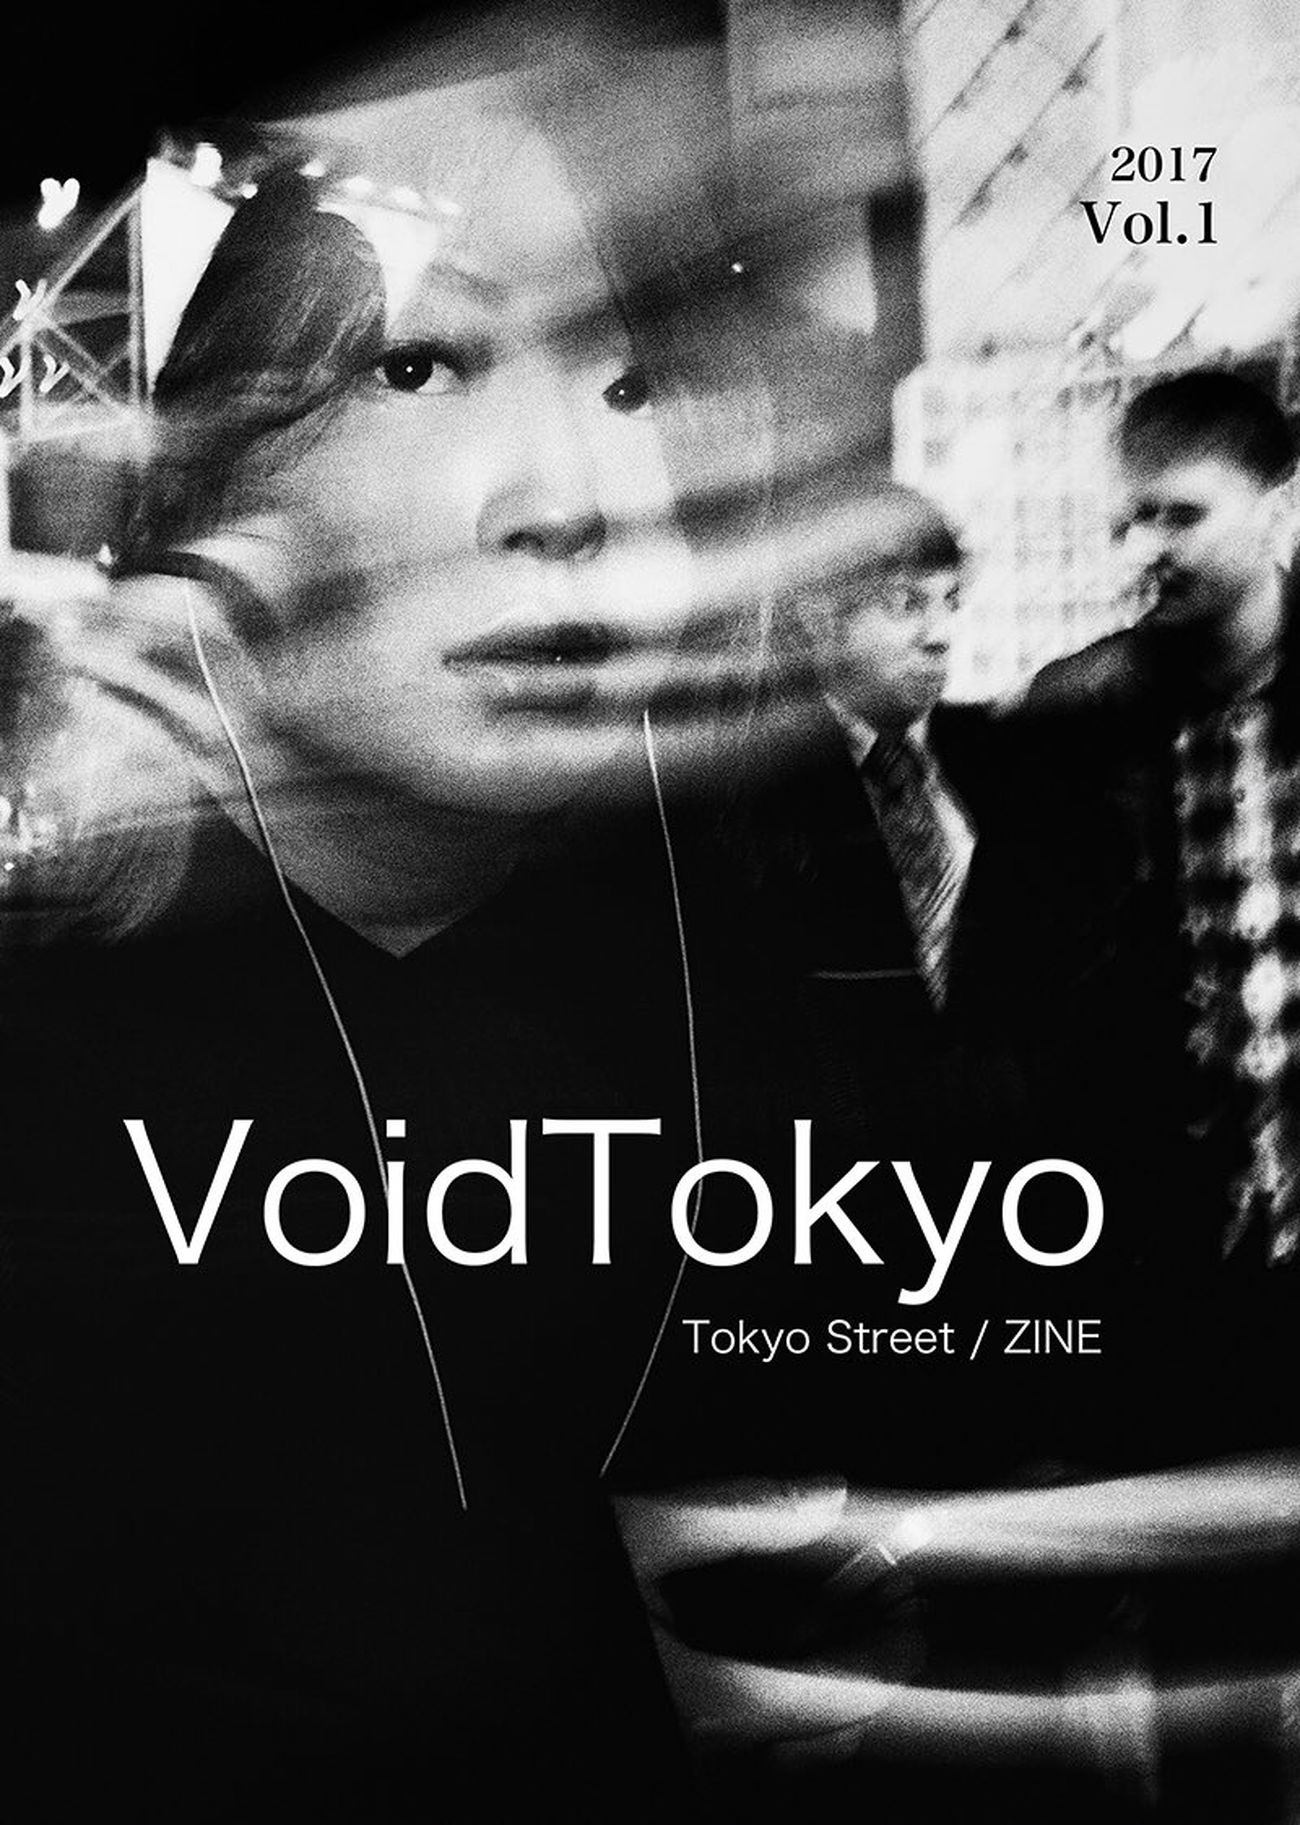 Streetphoto Street Photography Tokyo People Streetphotography Life東京のストリート写真家11名でZINEを定期的に発刊していくプロジェクト、VoidTokyoを開始しました。 ZINEは4月に発刊予定です。Webから事前予約も 受付しています。よろしくお願いいたします! launched out now Void Tokyo. http://voidtokyo.media/ The Street Zine will be published April. 11 Japanese street photographers are here. Check it out now.